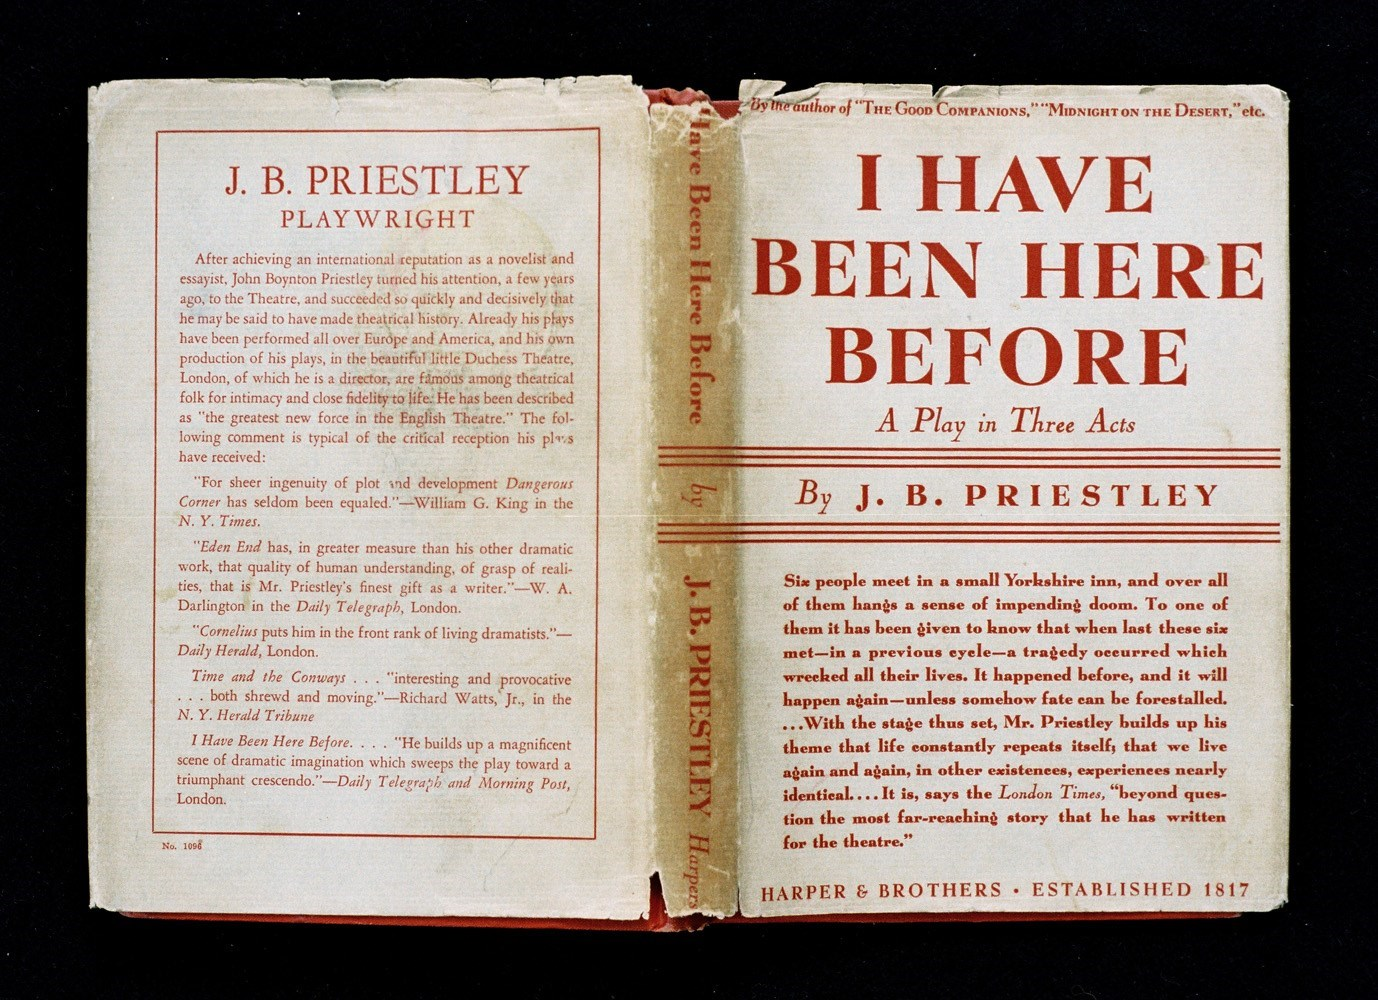 I have been here before (J.B. Priestley; Harper & Brothers Publishers), <br />25 x 34 cm, C-Print, 2014